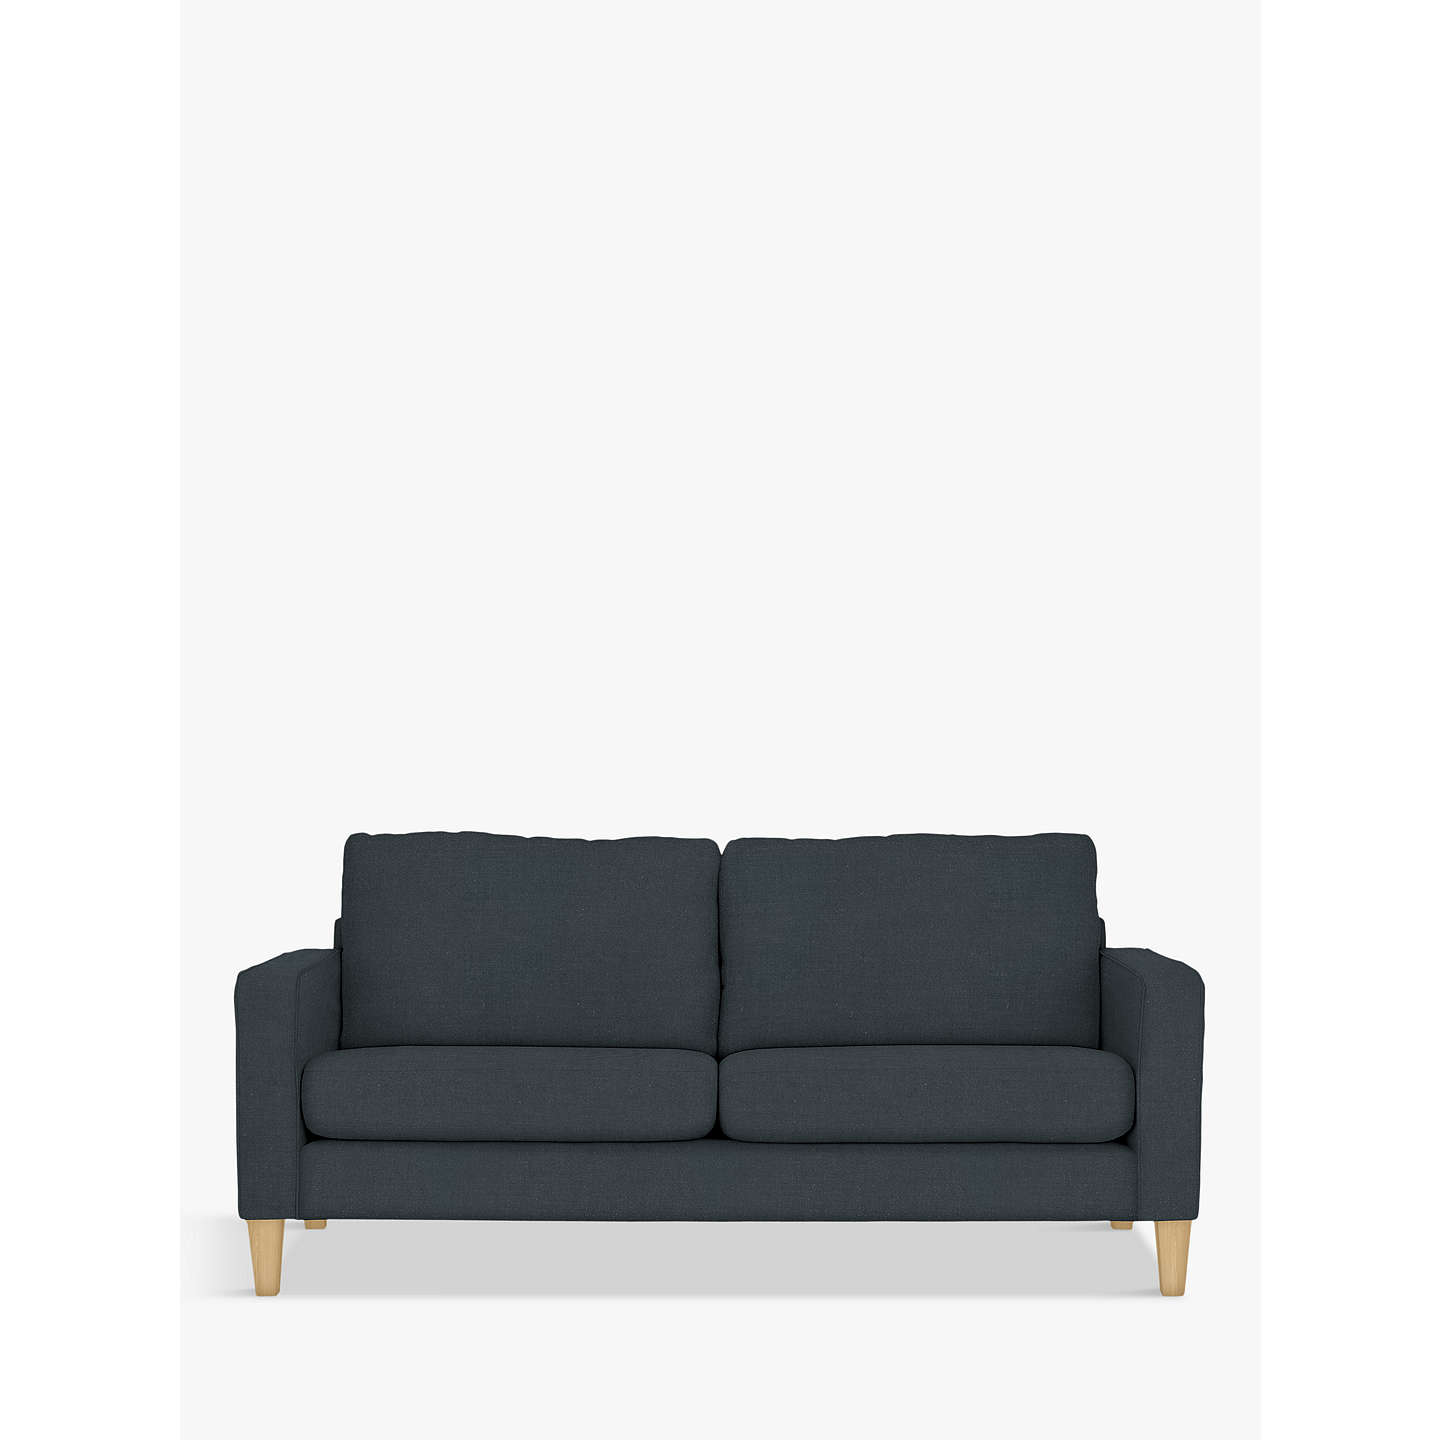 BuyJohn Lewis Jackson Large 3 Seater Sofa, Light Leg, Grey Online at johnlewis.com